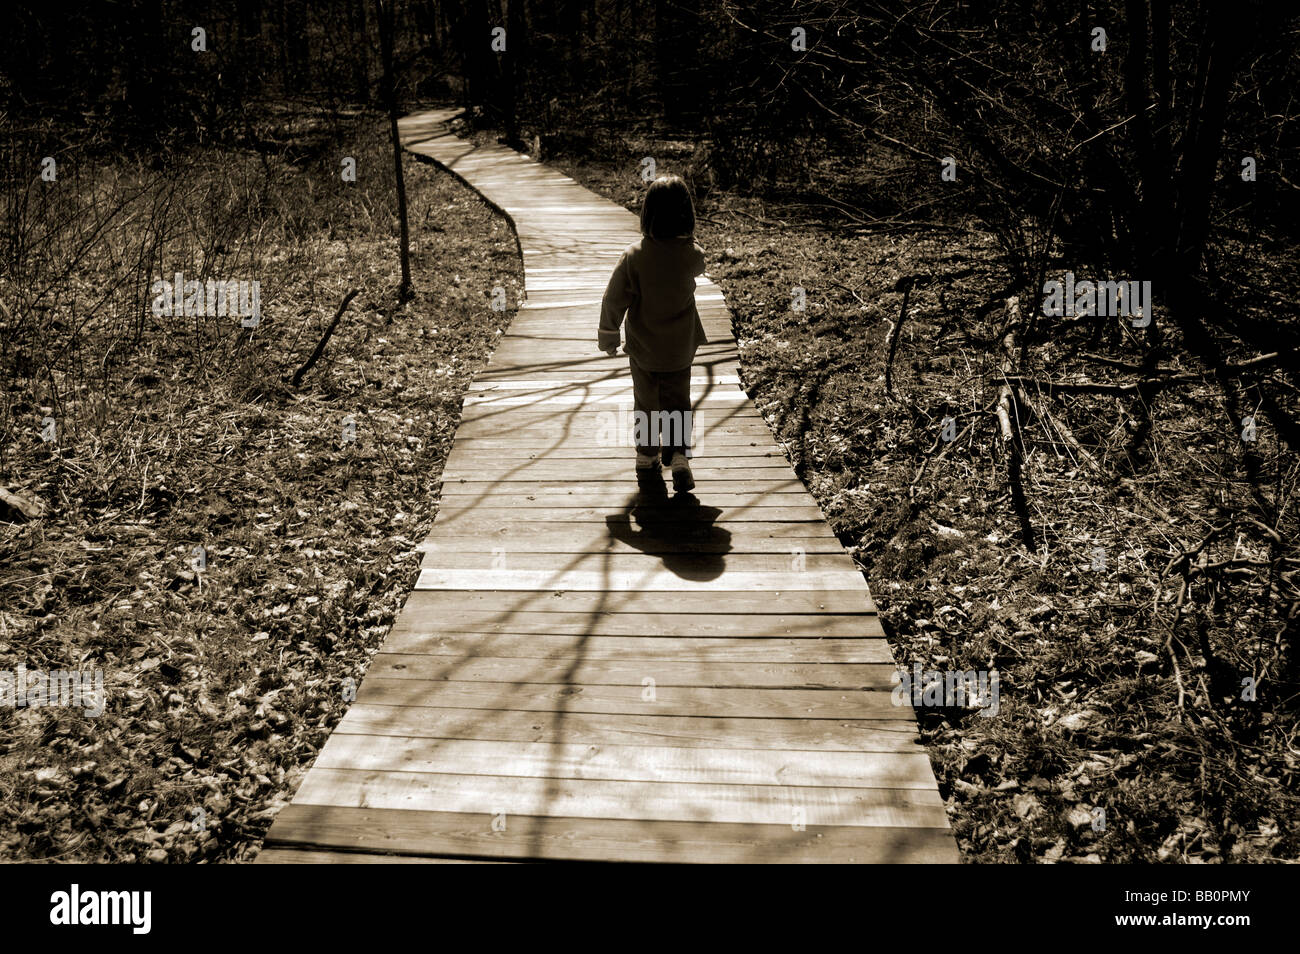 A child walks along a boardwalk during a walk in the woods - Stock Image